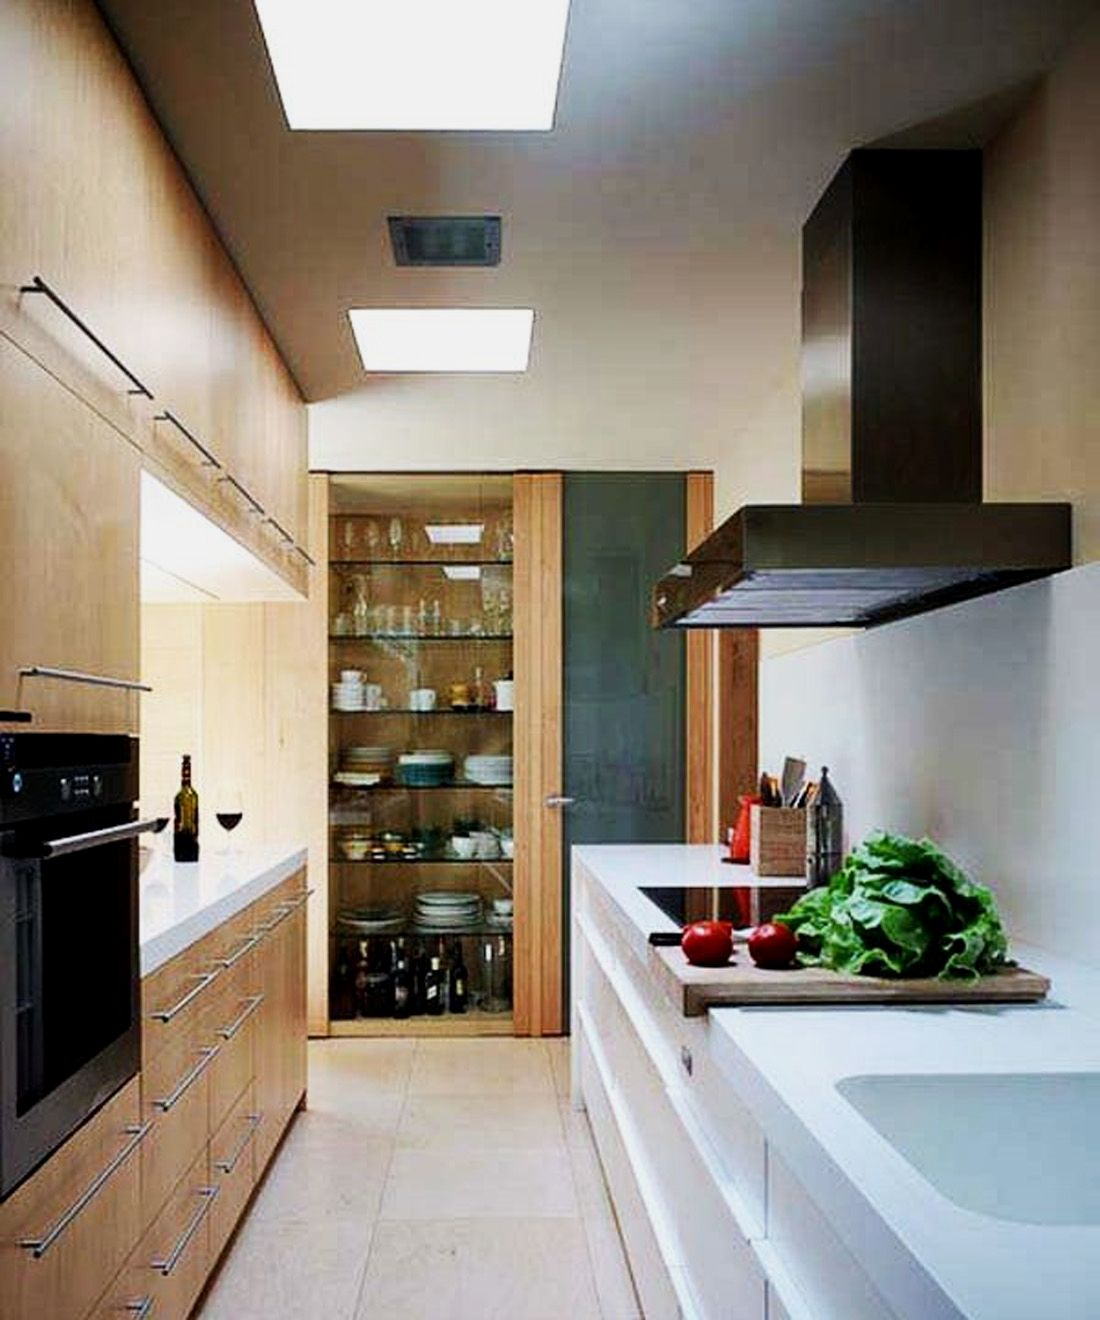 Lovely kitchen plans you can build for your home modern small decor ideas also rh pinterest